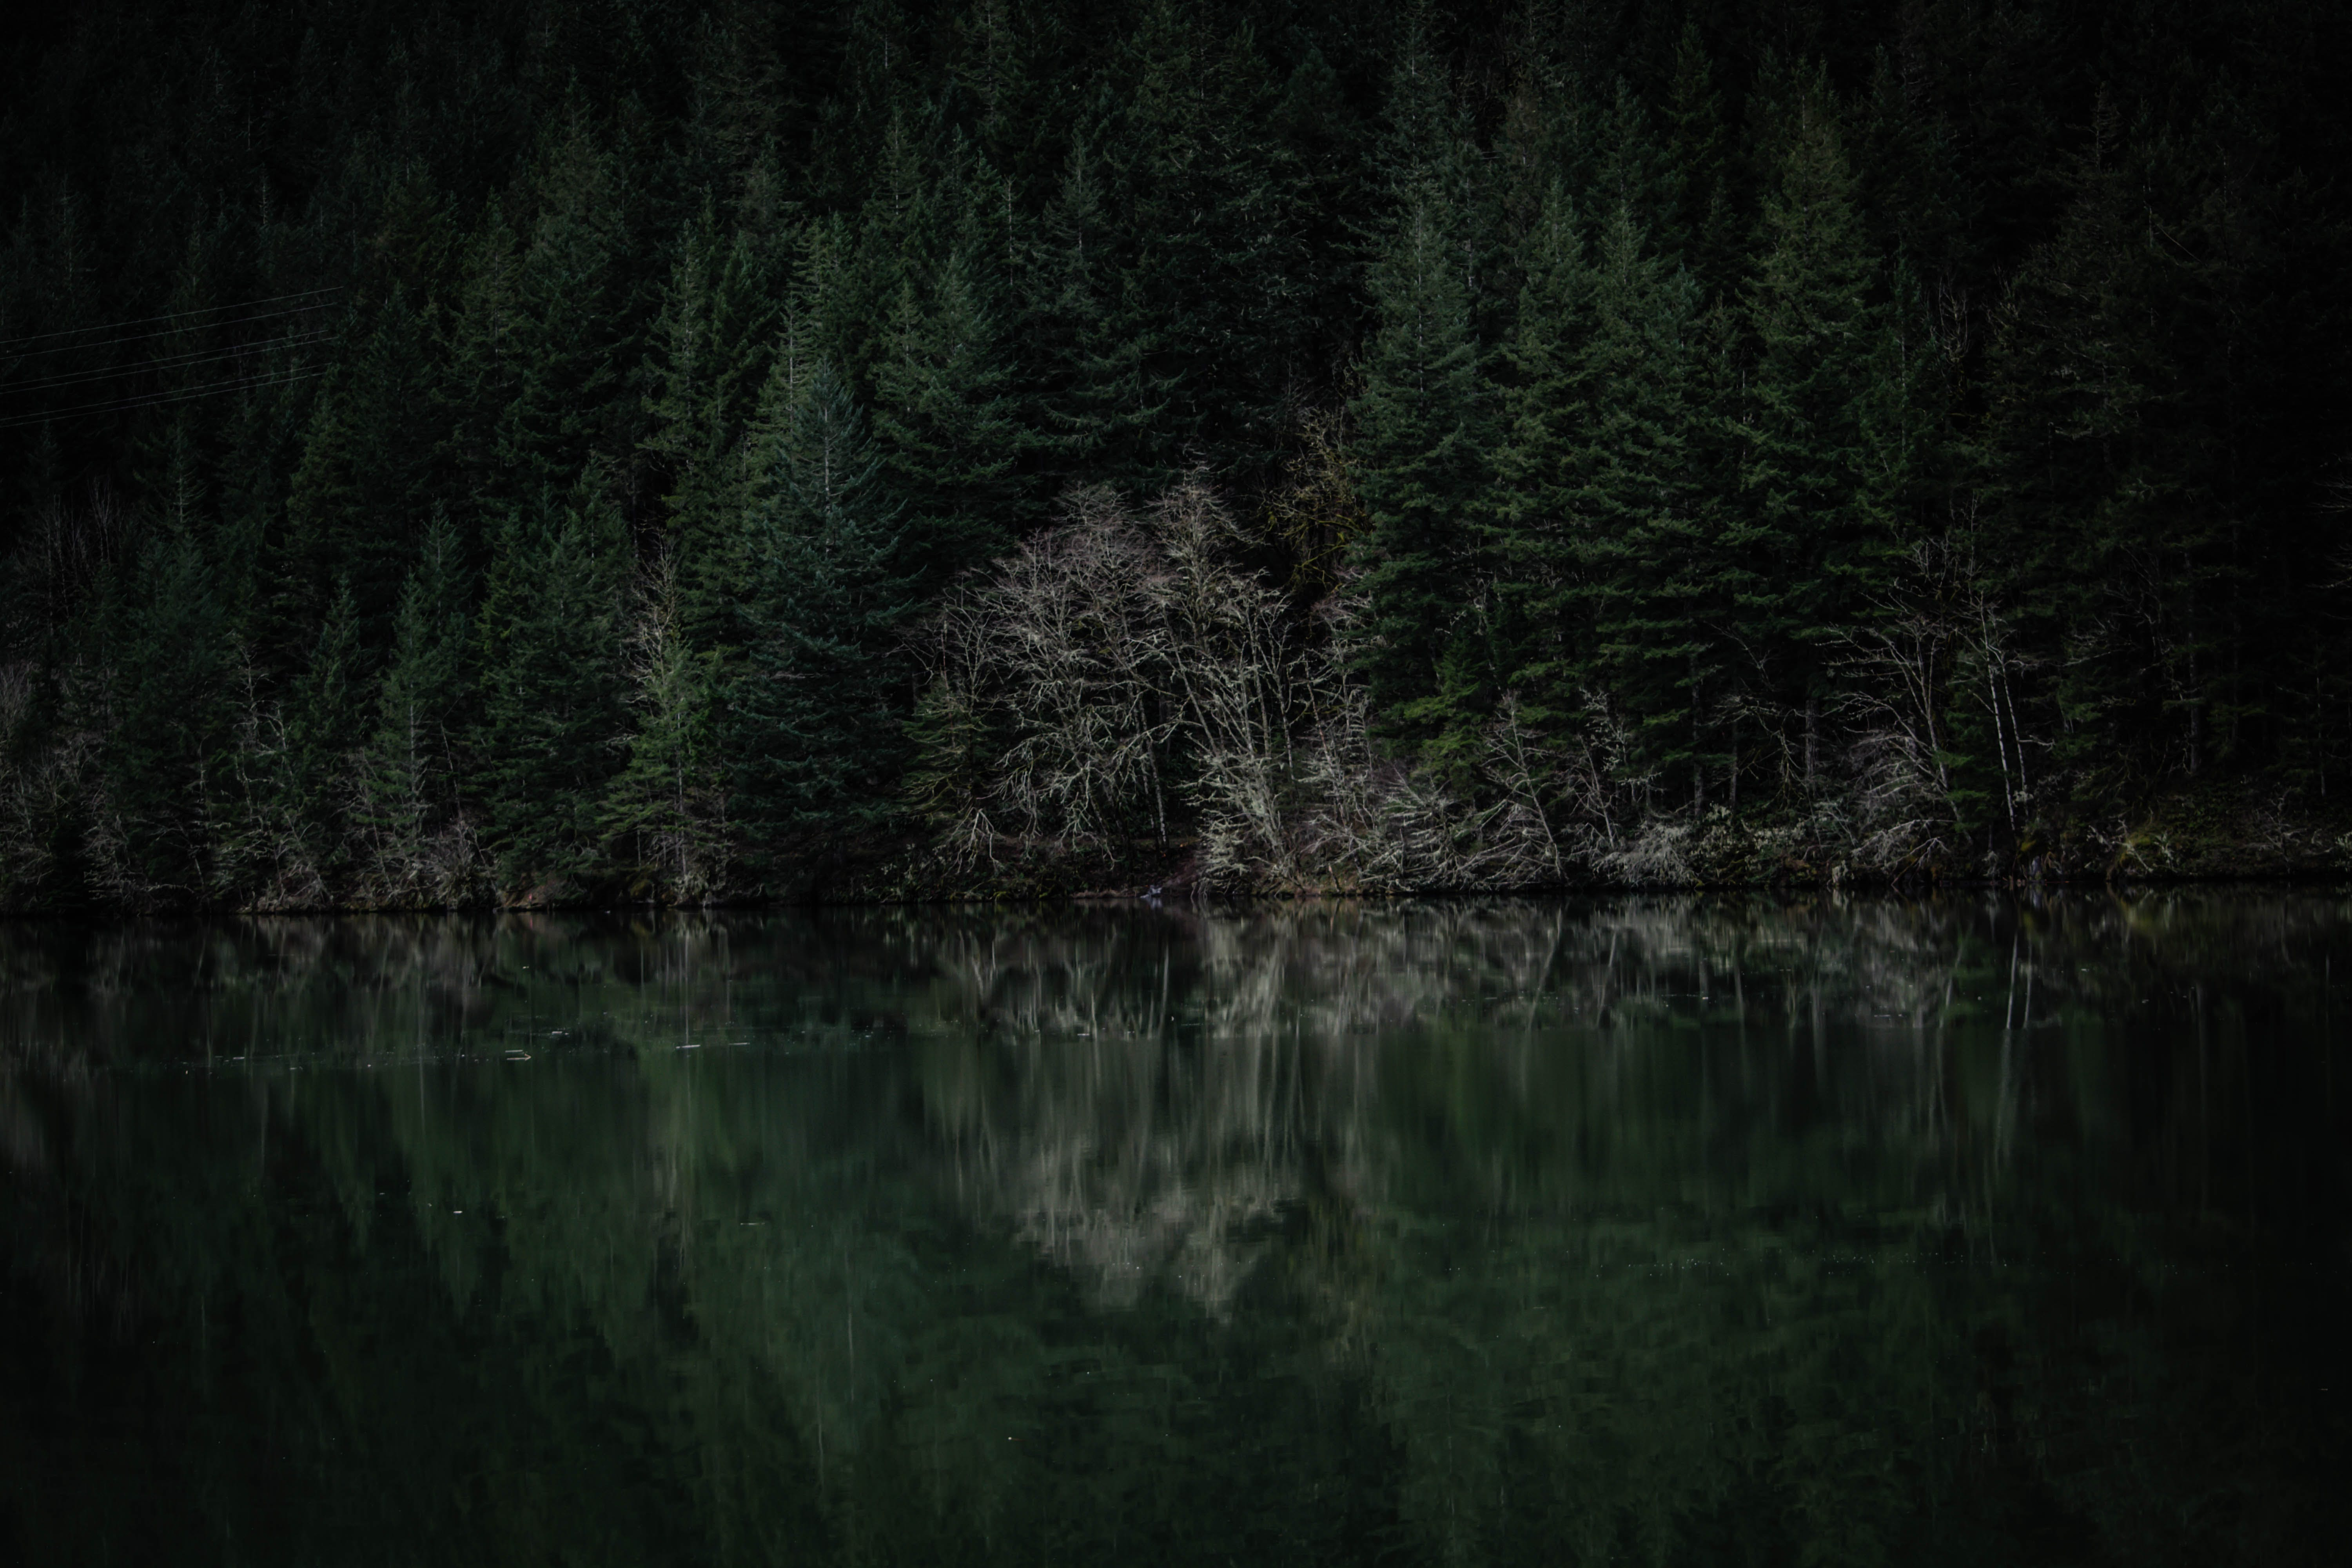 Body of Water and Pine Trees